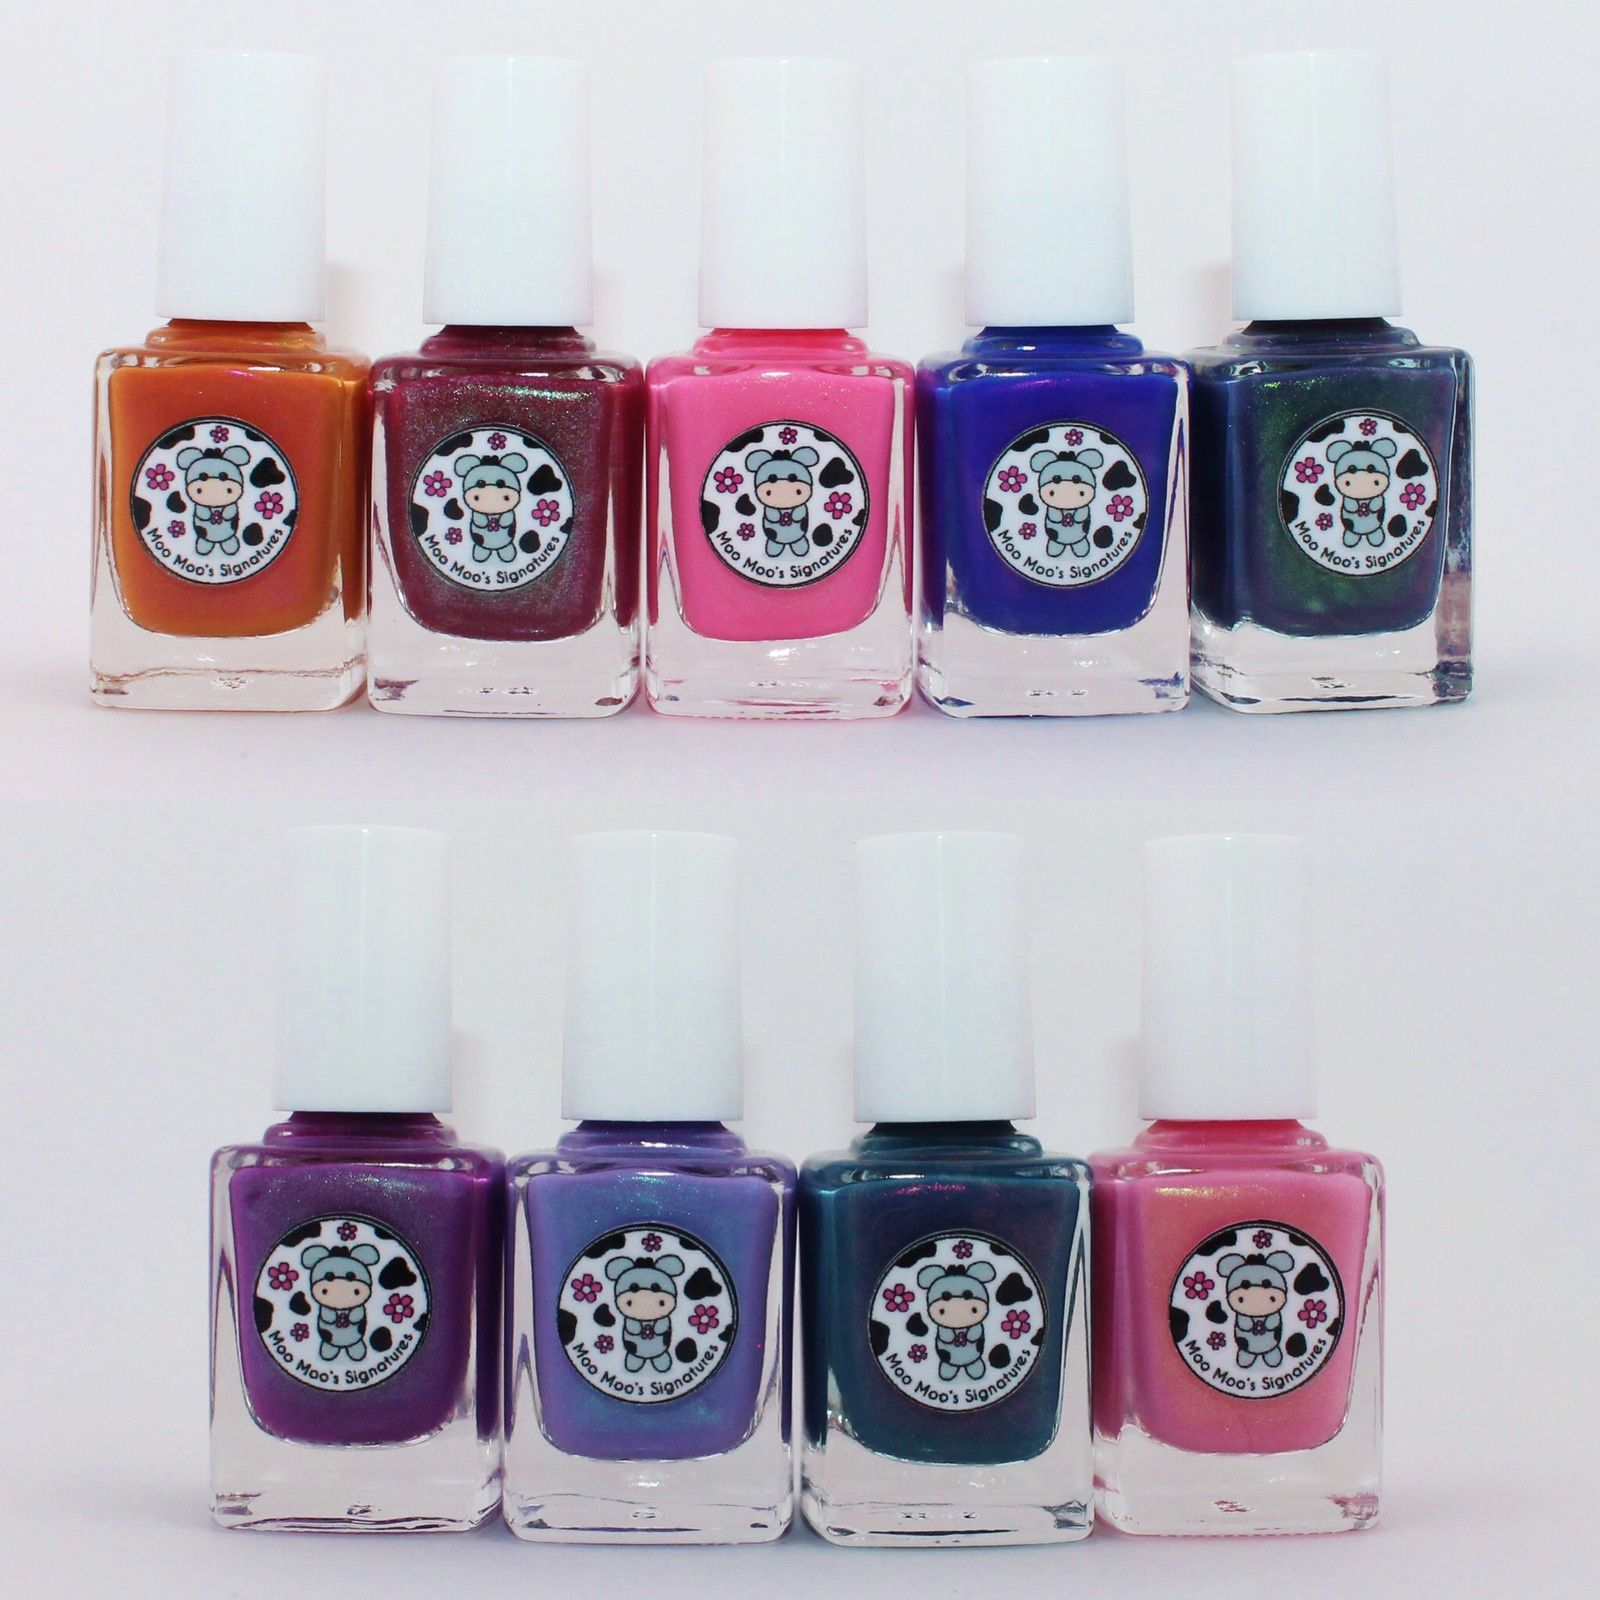 Moo Moo's Signatures Disappeared Loulan, Incantation, Love Brightens Our World, Viva Forever, The Fallen Princess, Rosy Aroma, Frozen Lavender, Mermaid Elixir, Himalayan Cherry.